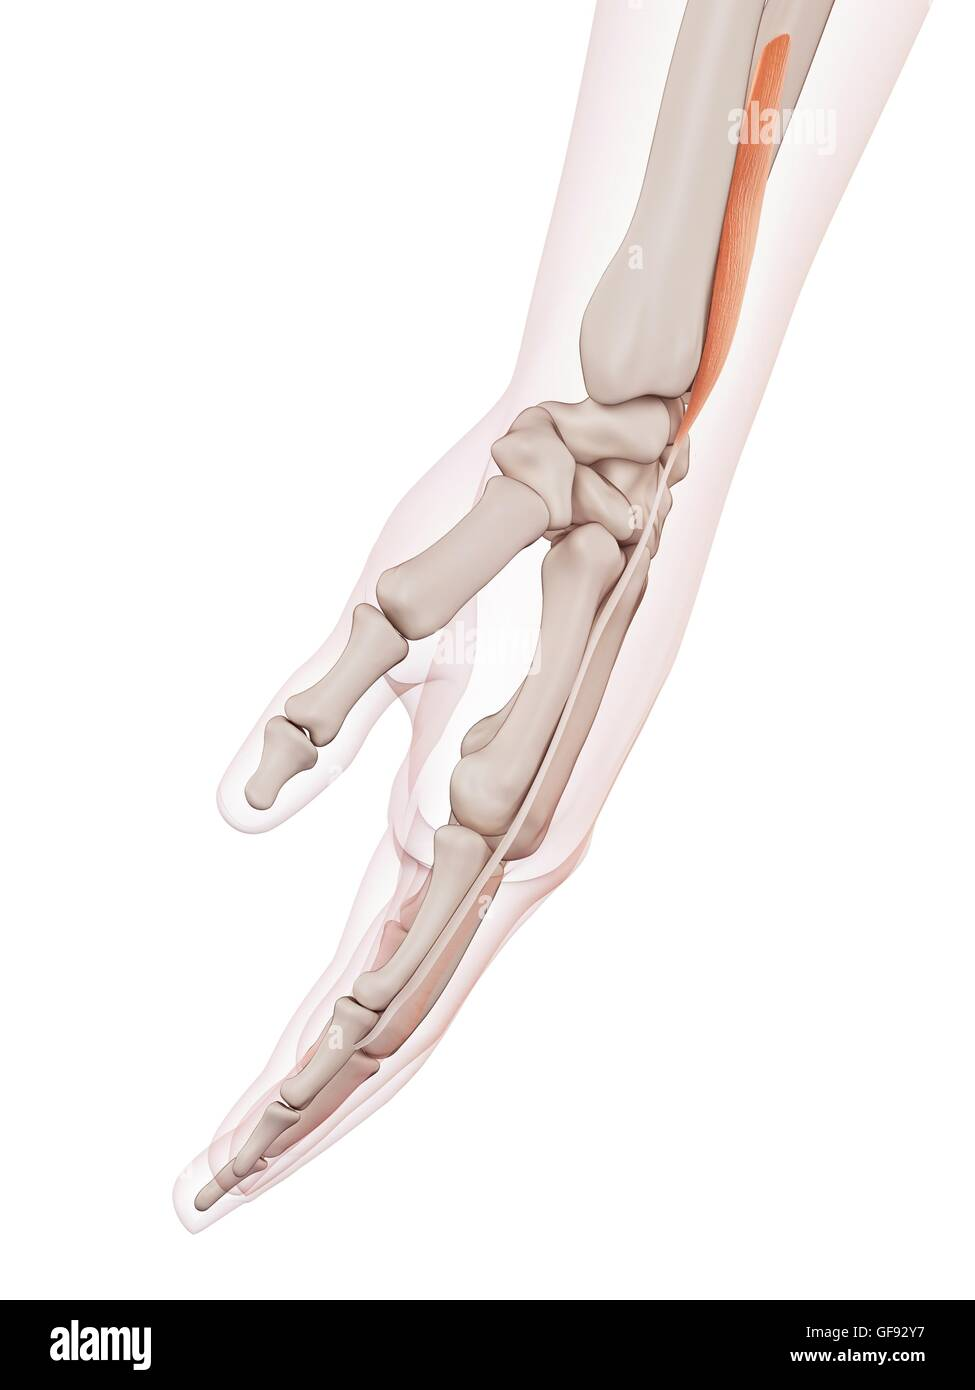 Human Wrist Muscles Illustration Stock Photos Human Wrist Muscles